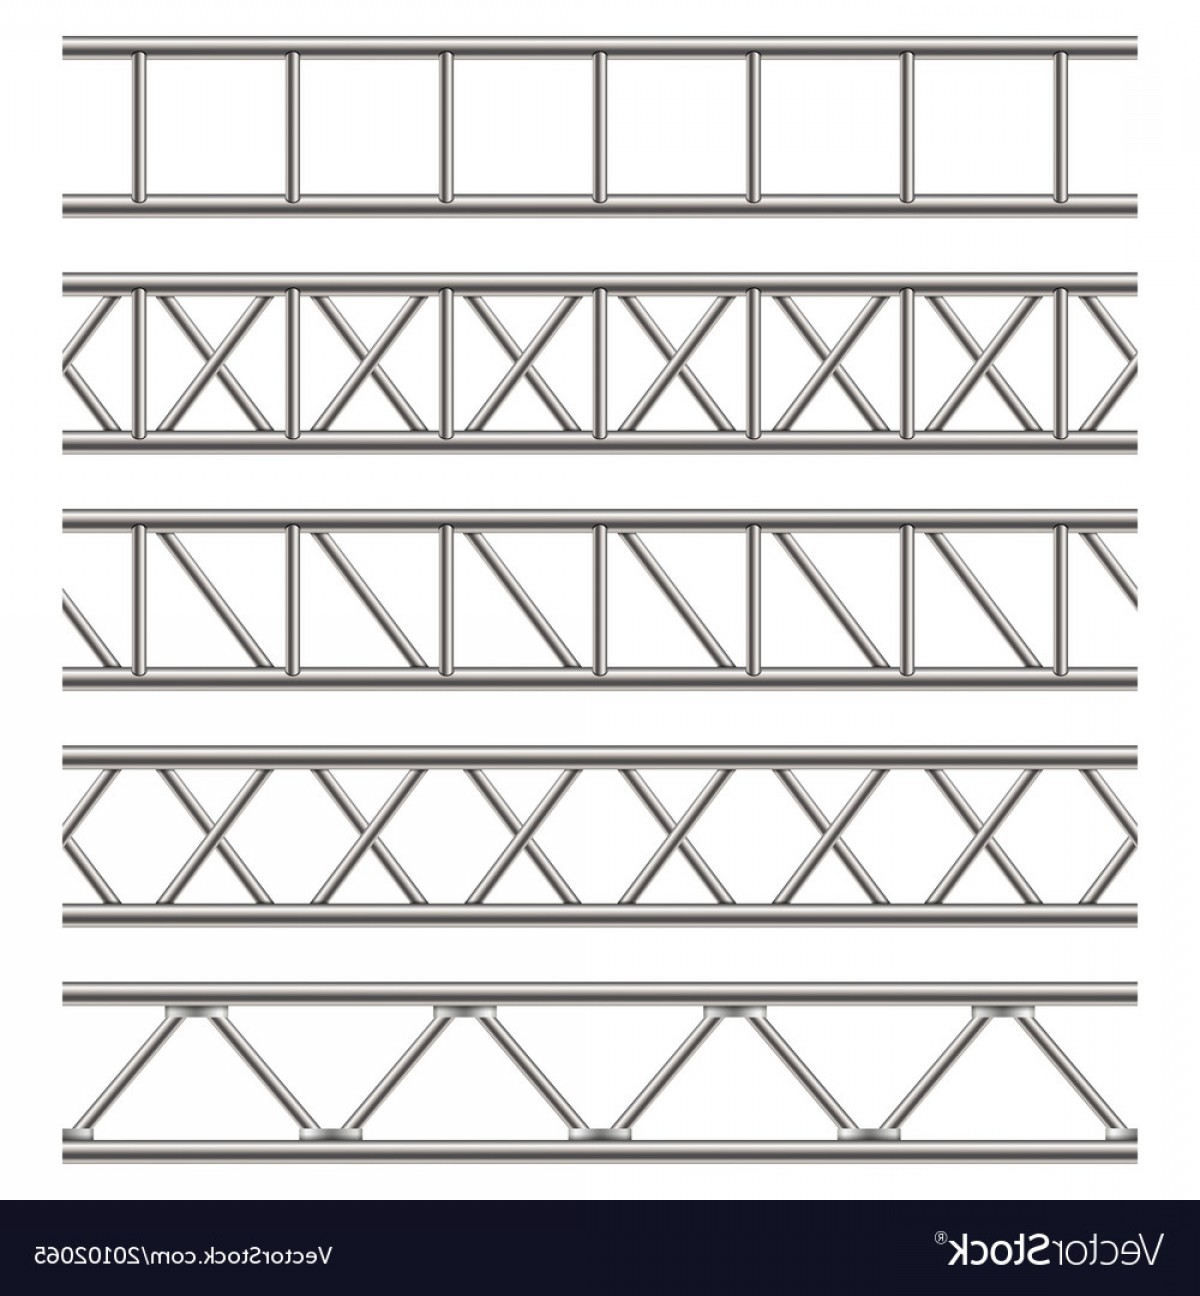 Aluminum Truss Design Vector: Creative Of Steel Truss Girder Vector